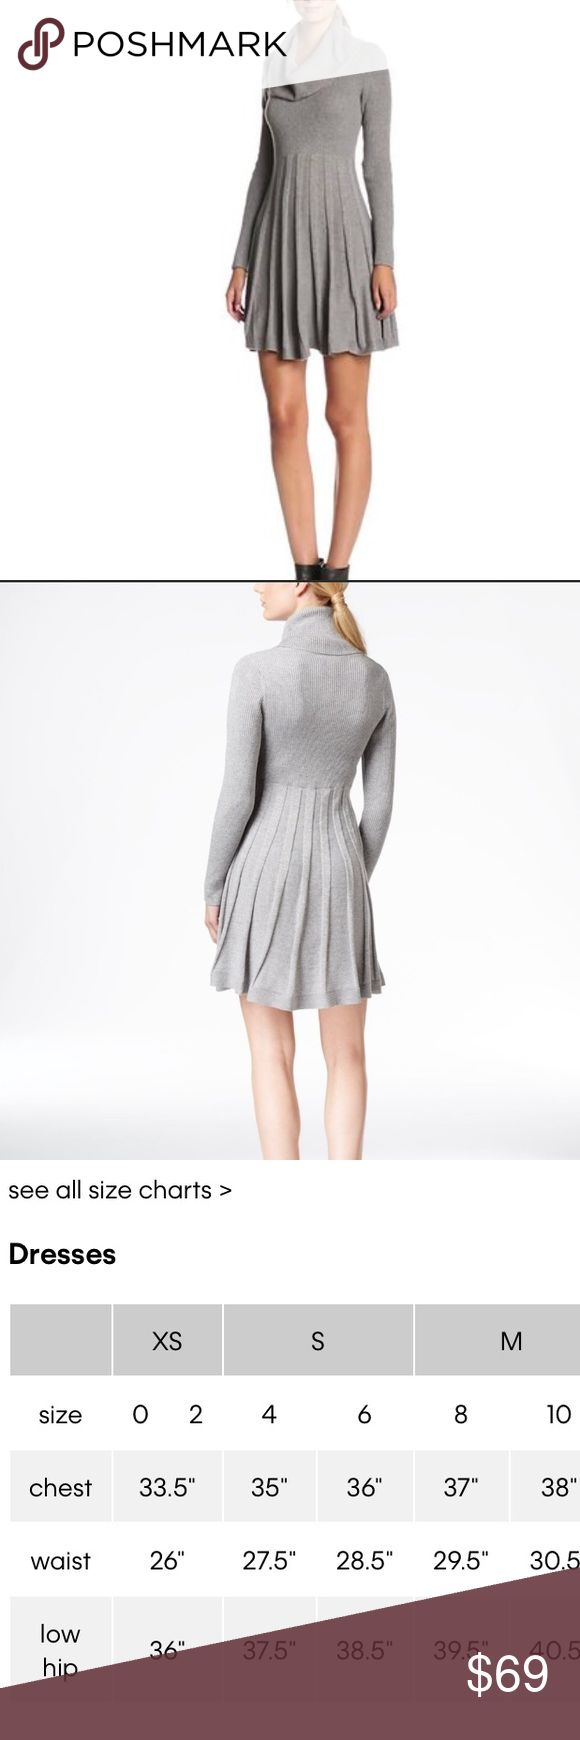 Calvin Klein Cowl-Neck sweater dress Pre-loved• excellent condition • Calvin Klein• cowl-neck• fit and flare• pleated skirt• ribbed knit long sleeves• color is dark charcoal grey ( darker than picture sample) • no stains/rips• no sign of wear• more pictures and measurements coming soon• no trades• offers & bundles welcomed Calvin Klein Dresses Mini